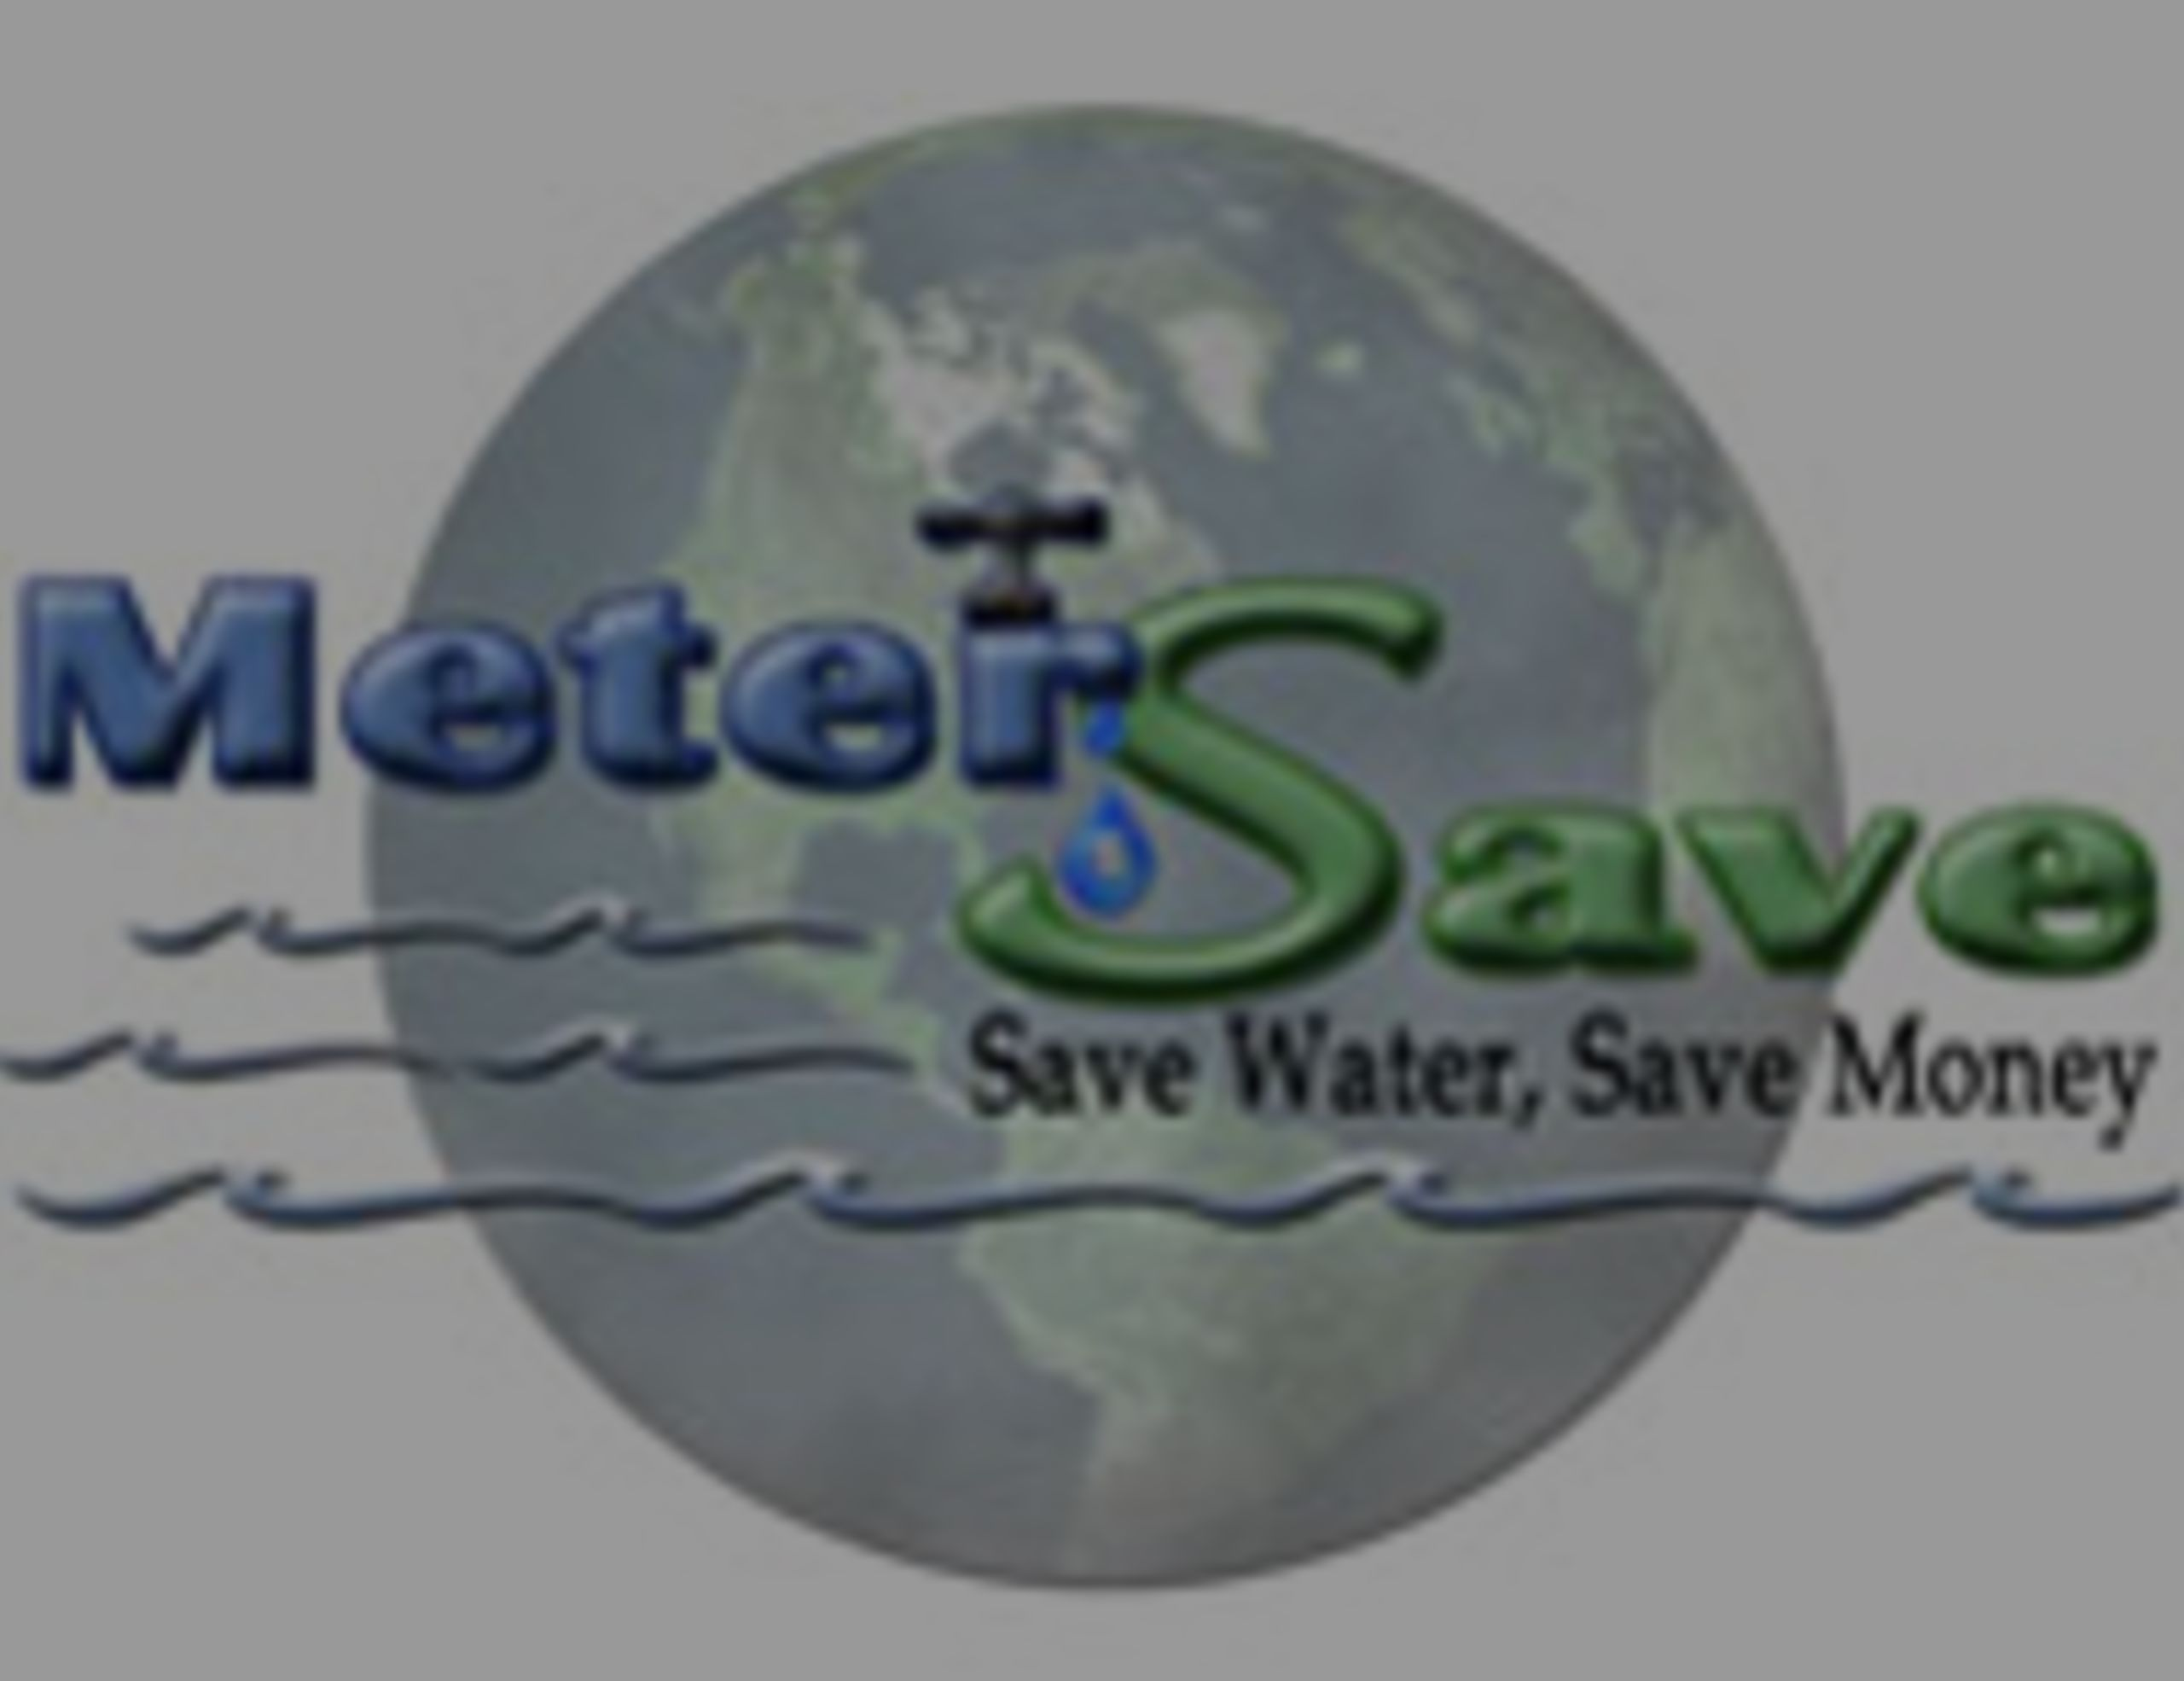 Save Money on Your Water Bill